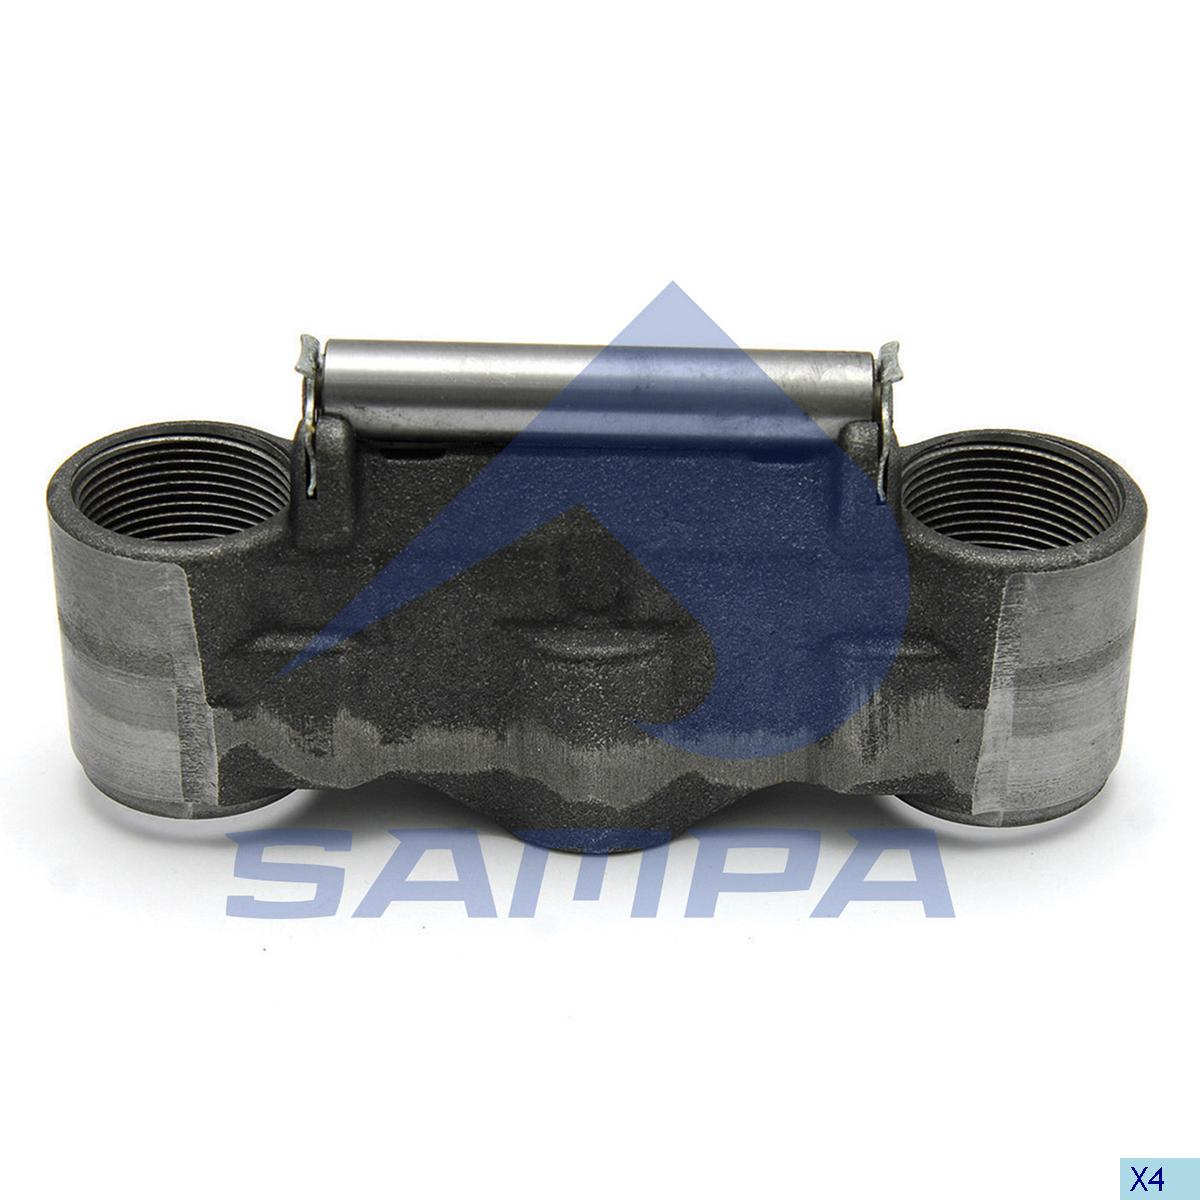 Bridge Assembly, Brake Caliper, Brake Caliper Parts, Brake